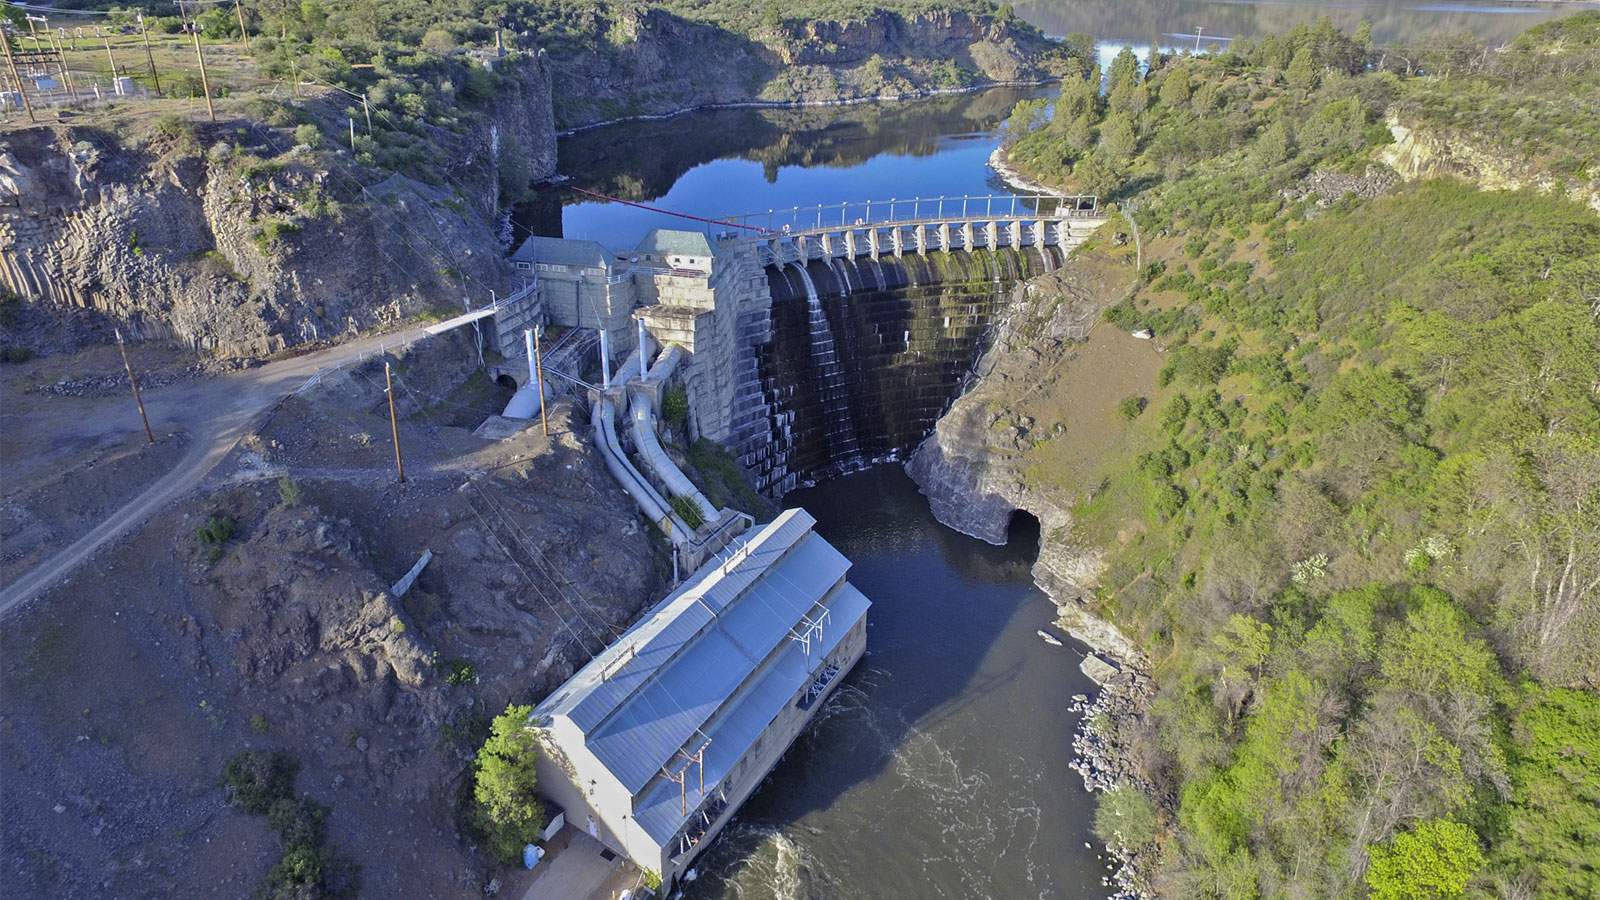 A dam good example of collaboration on California water issues